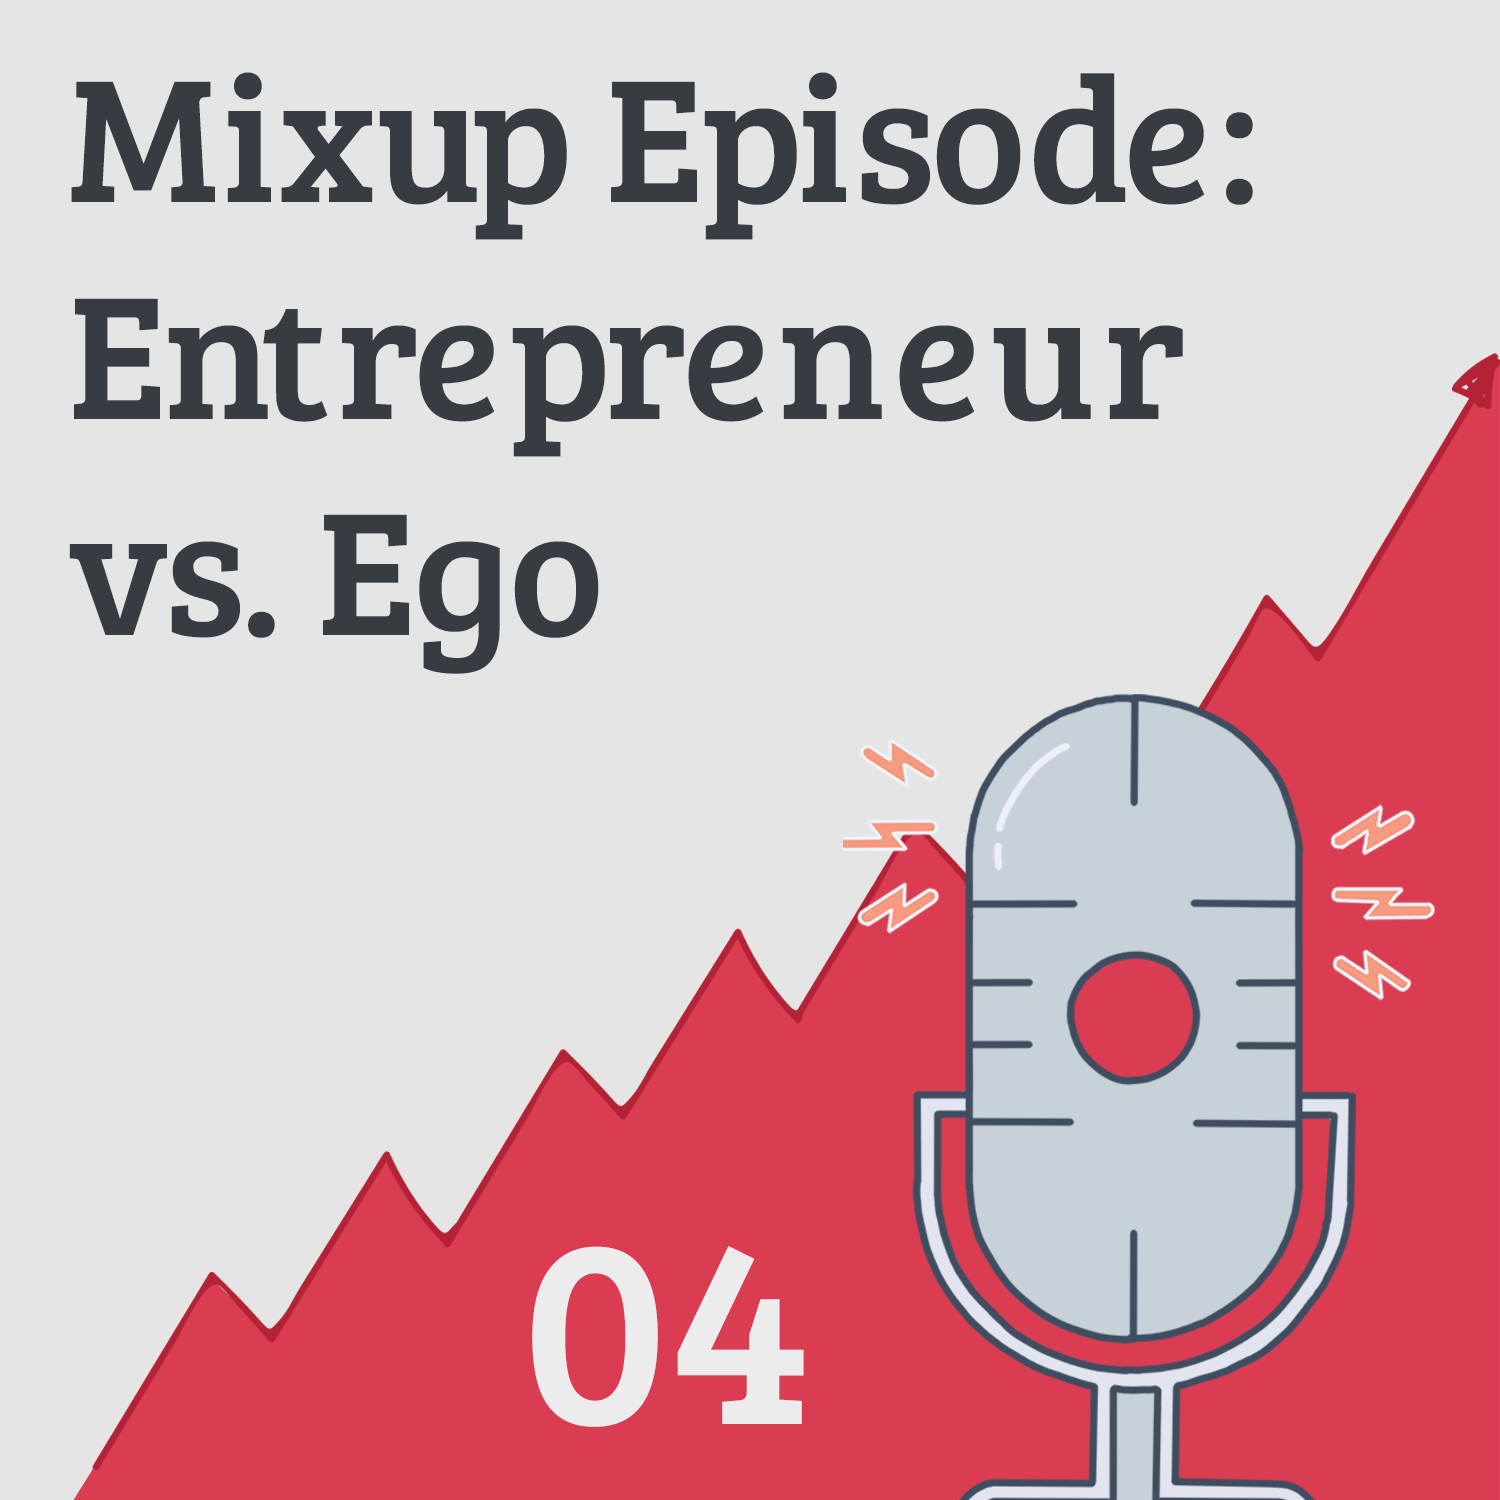 Mixup Episode: 5 Ways Ego is Bad for Business